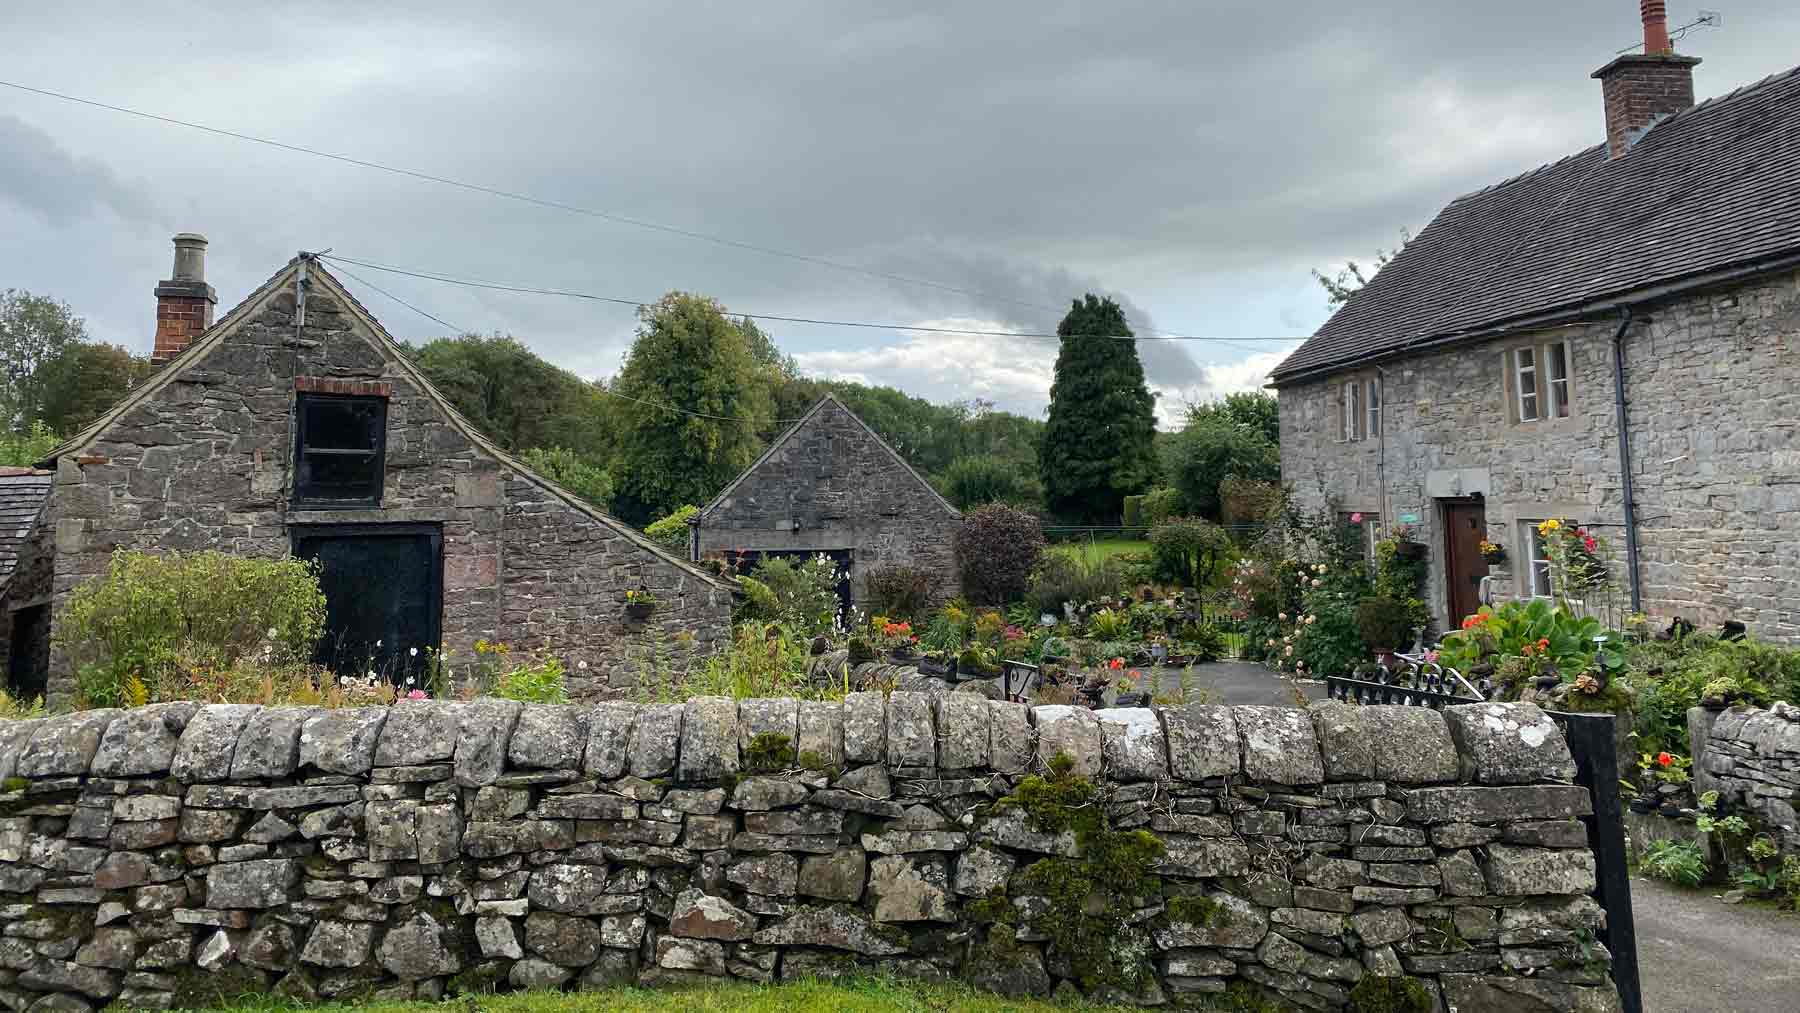 Stone cottages in the beautiful village of Tissington, Peak District